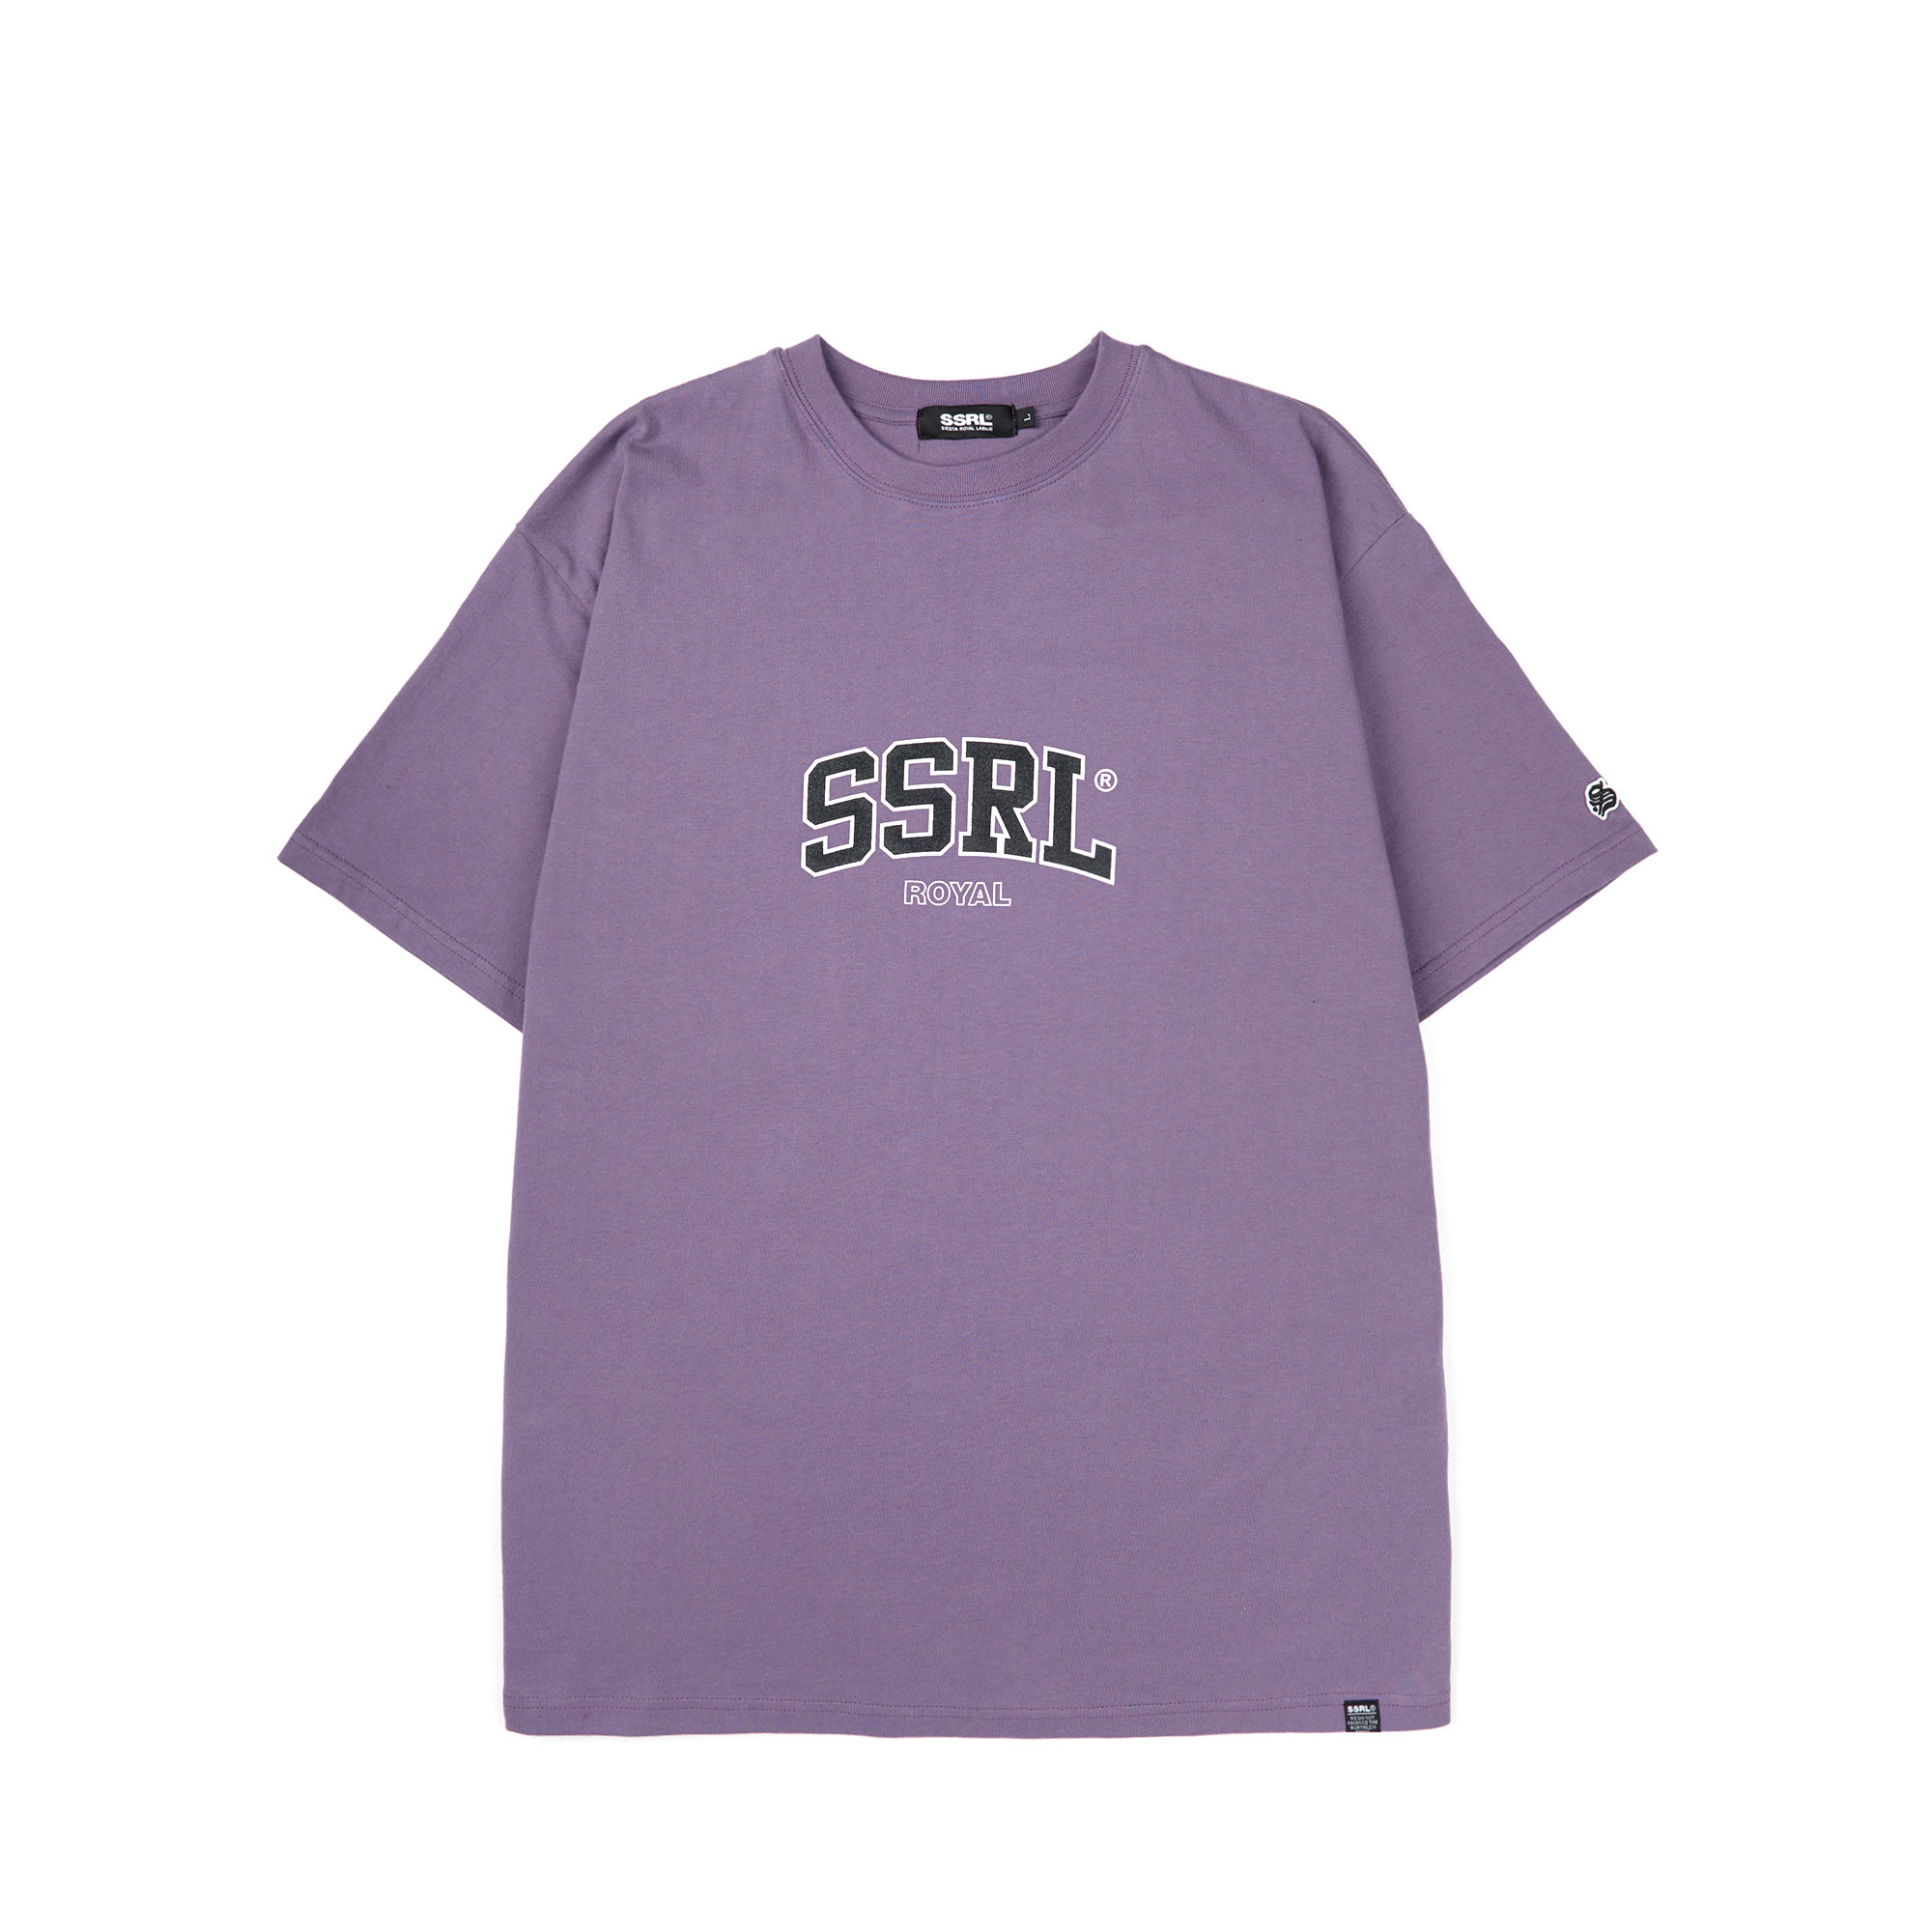 arch logo tee / purple